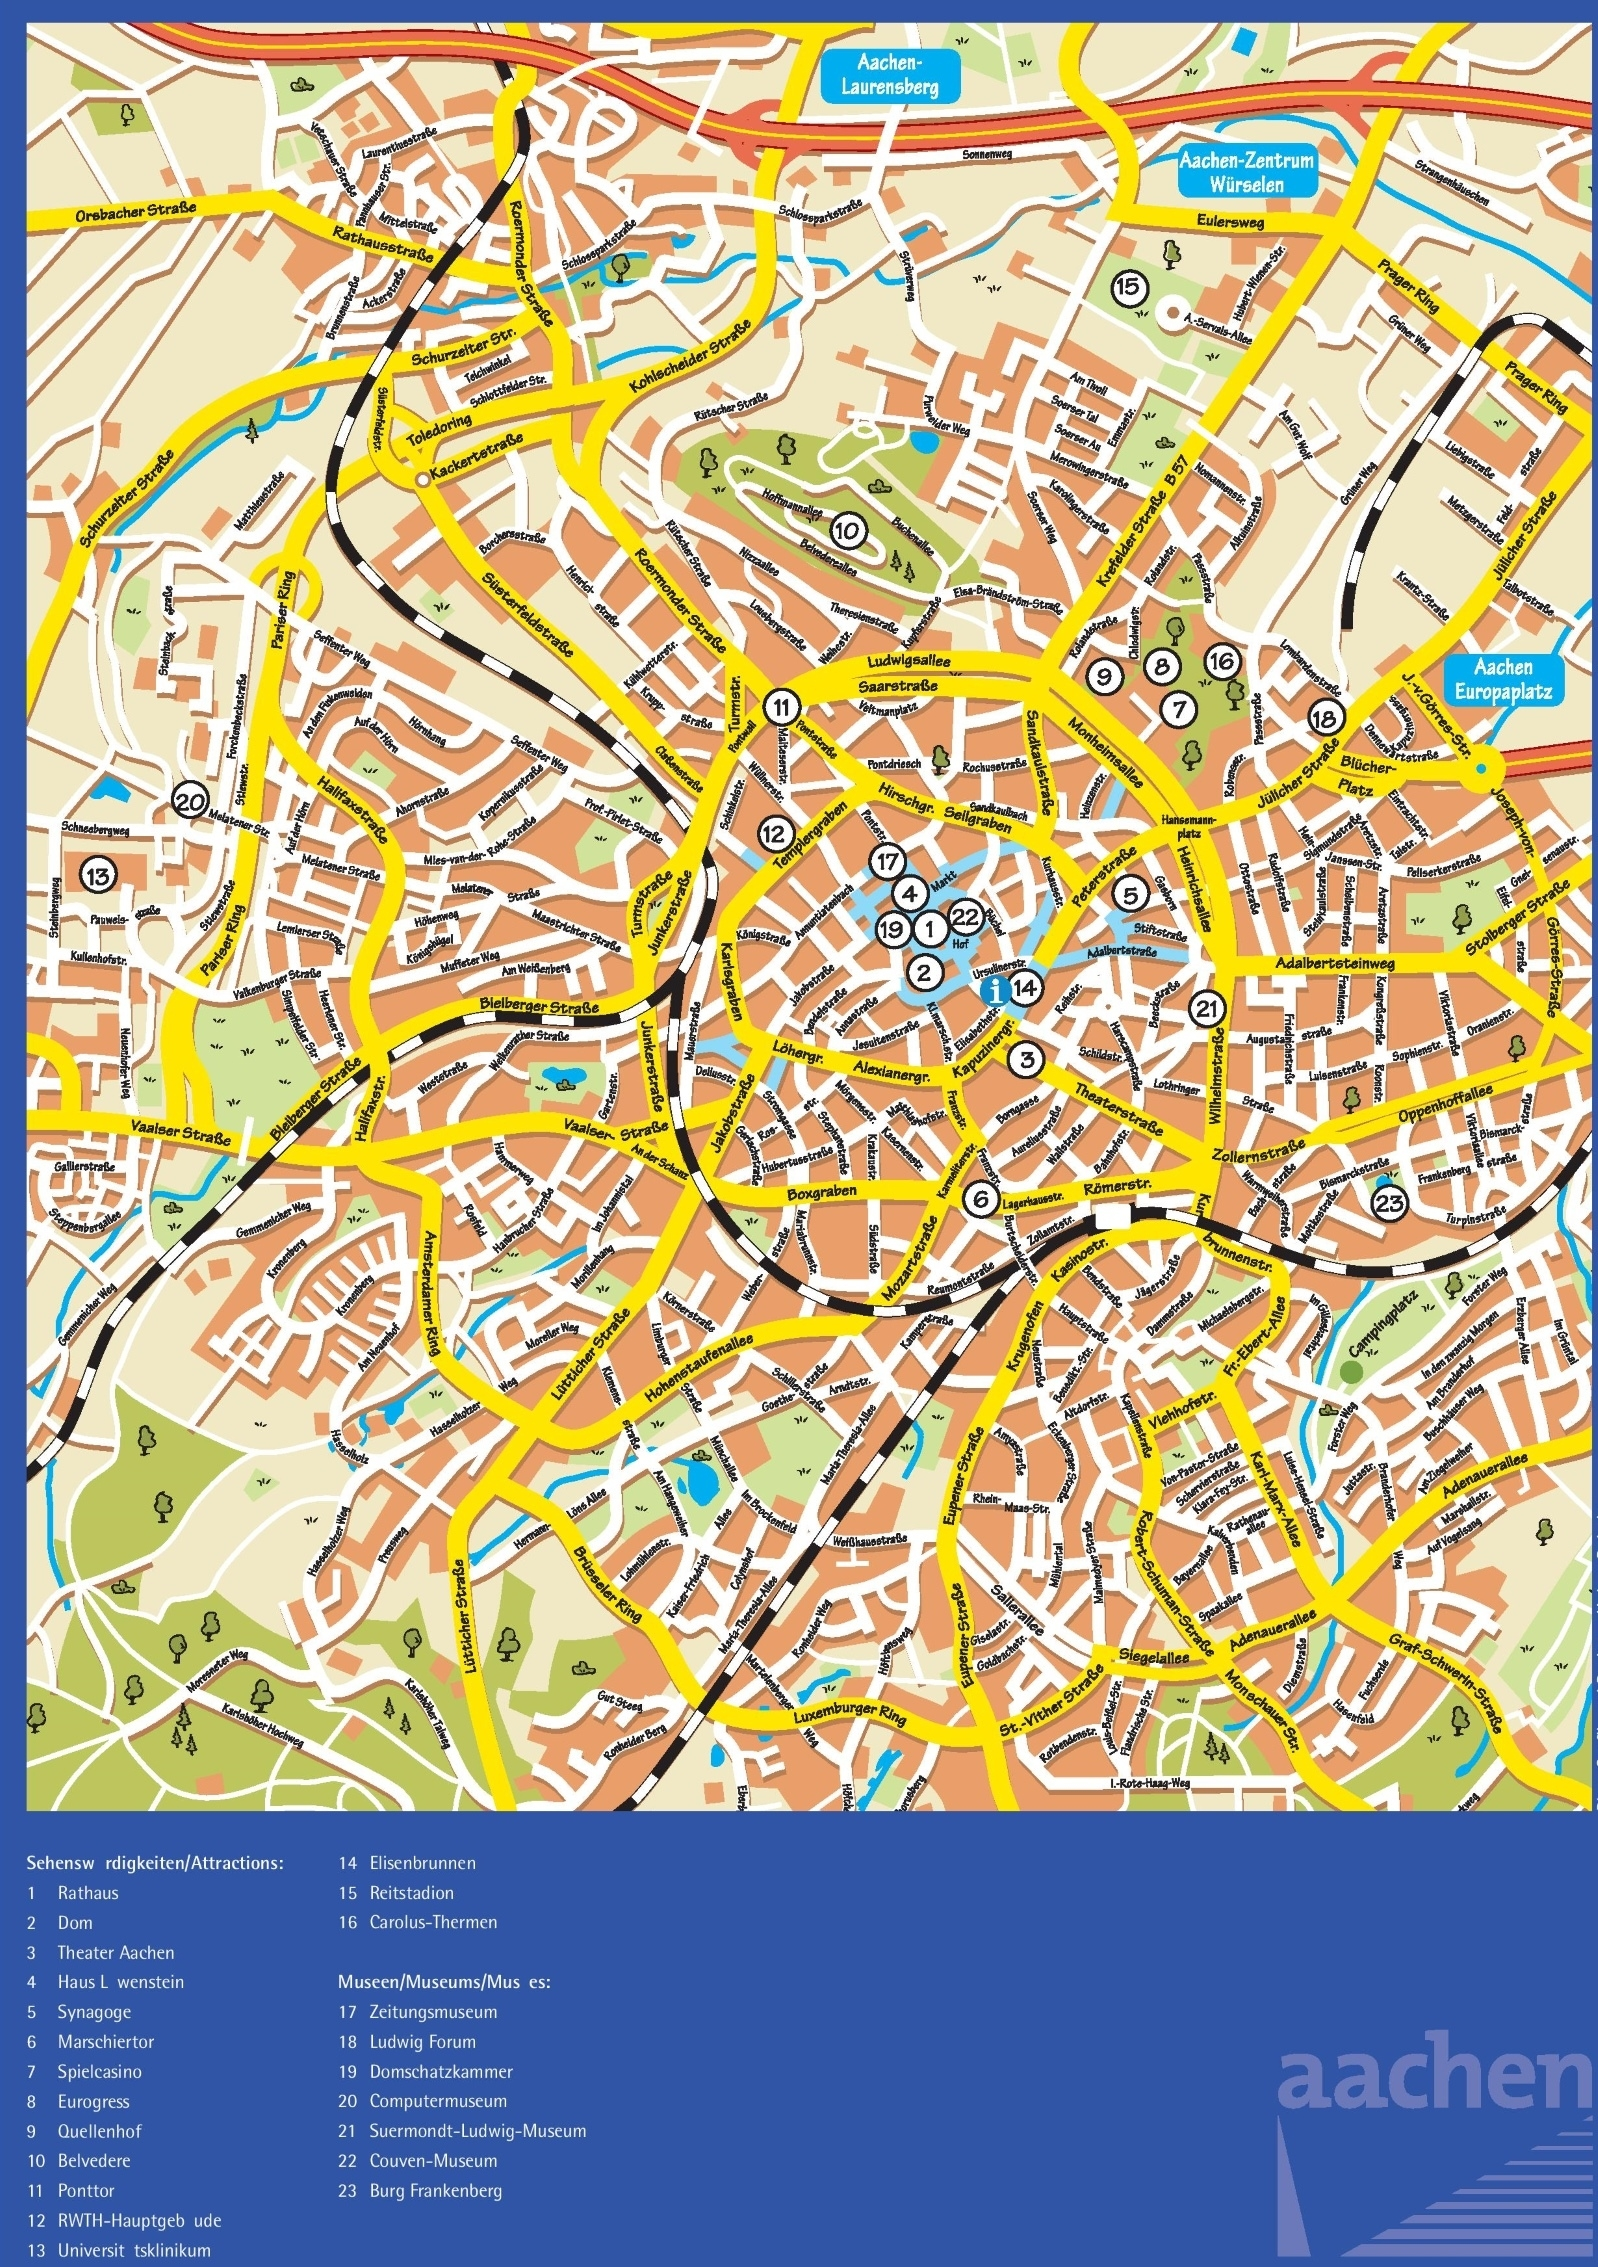 Aachen Maps   Germany   Maps Of Aachen within Aachen Germany Map